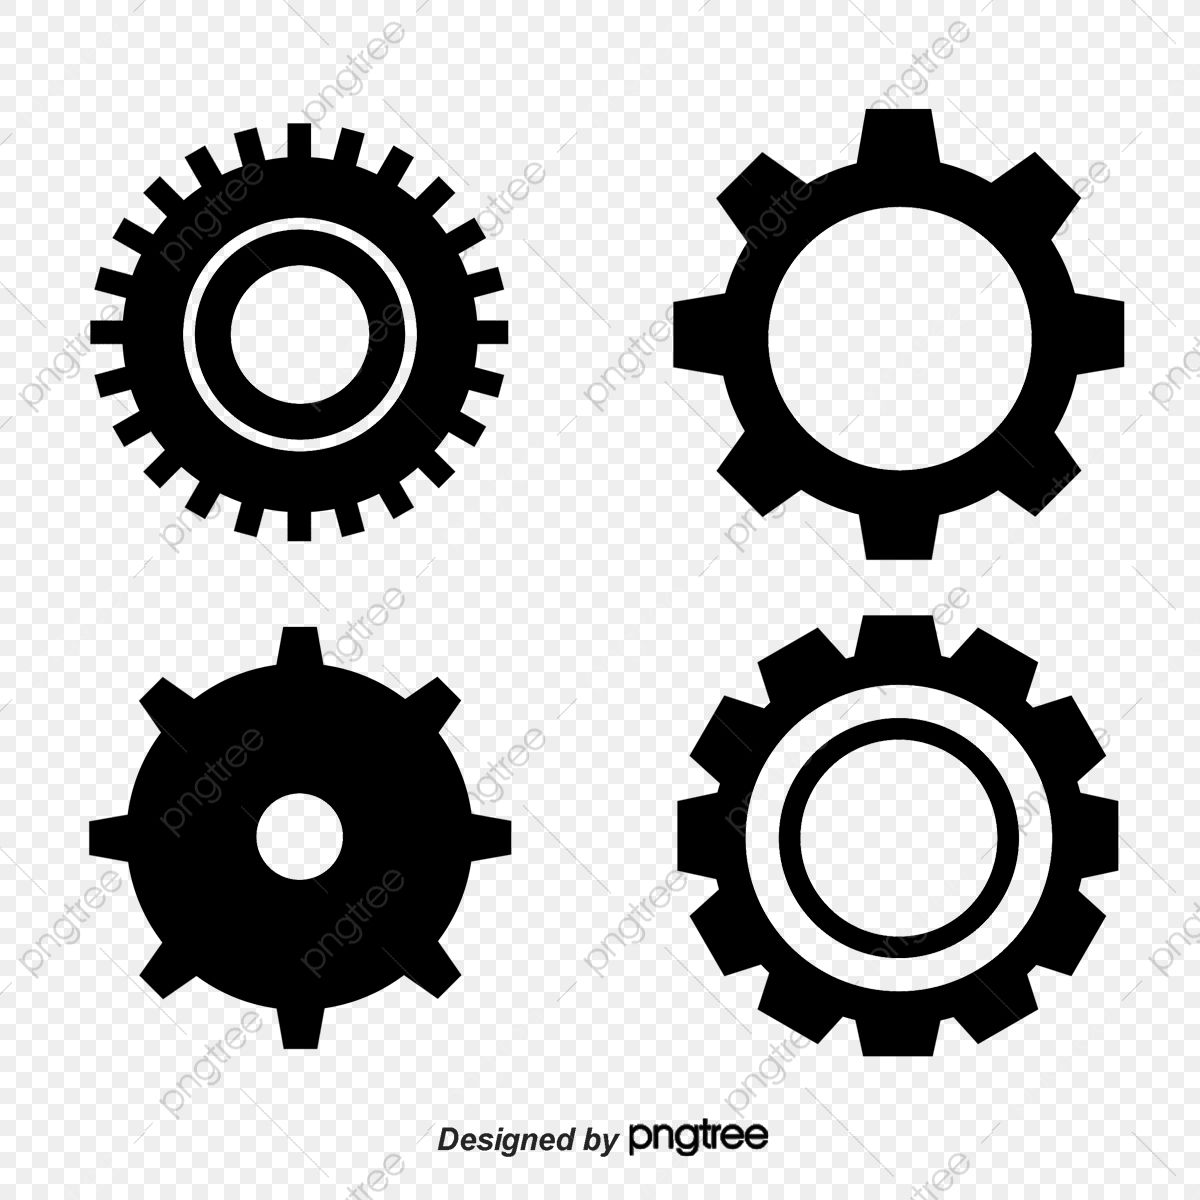 Gray Gear Chain Gear Vector Chain Vector Gear Png Transparent Clipart Image And Psd File For Free Download Vector Free Vector Graphics Background Banner